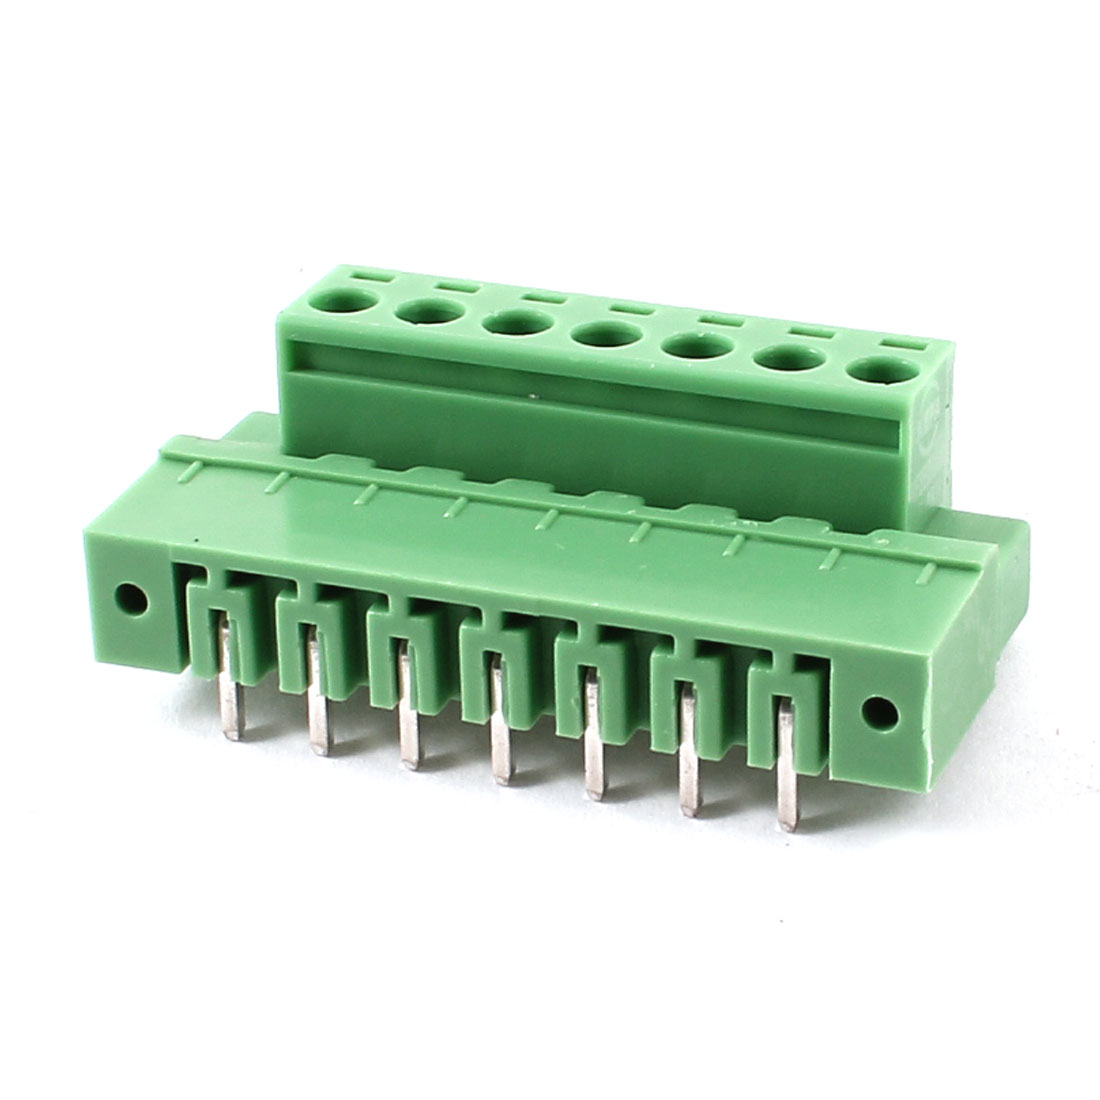 Pair 7 Pin 5.08mm Pitch Screw Pluggable Terminal Block Connector 300V 10A